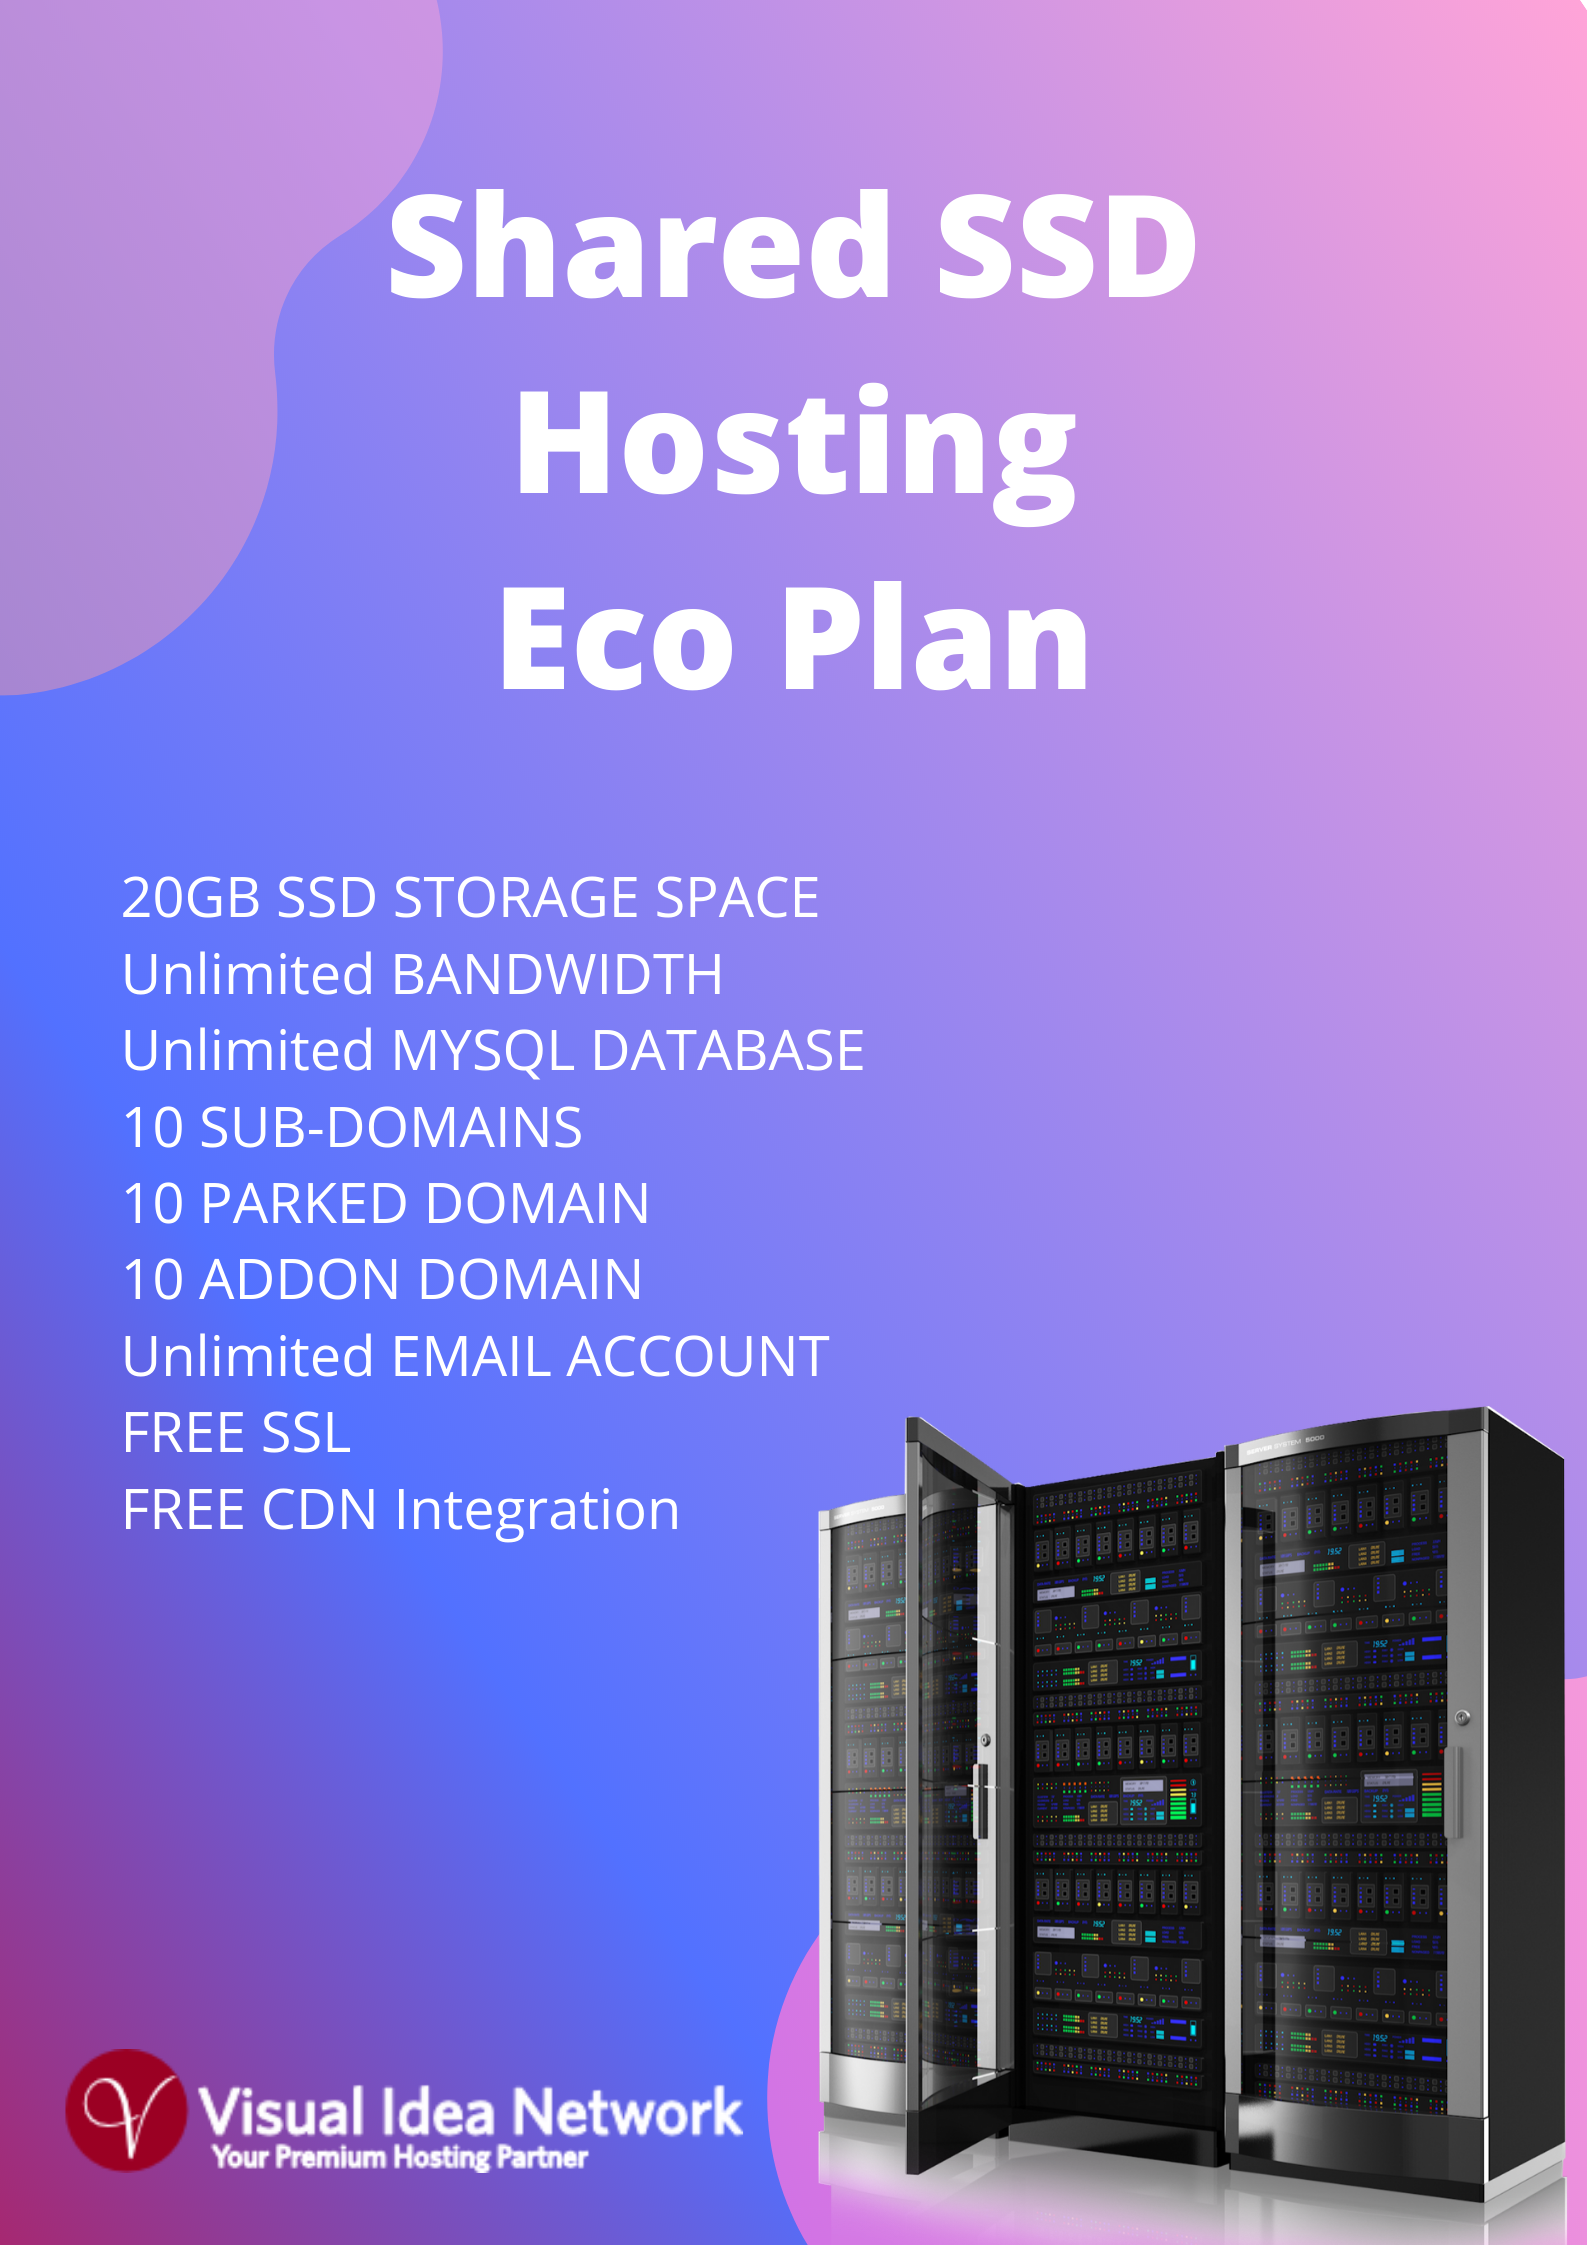 Shared SSD Economic Hosting Plan